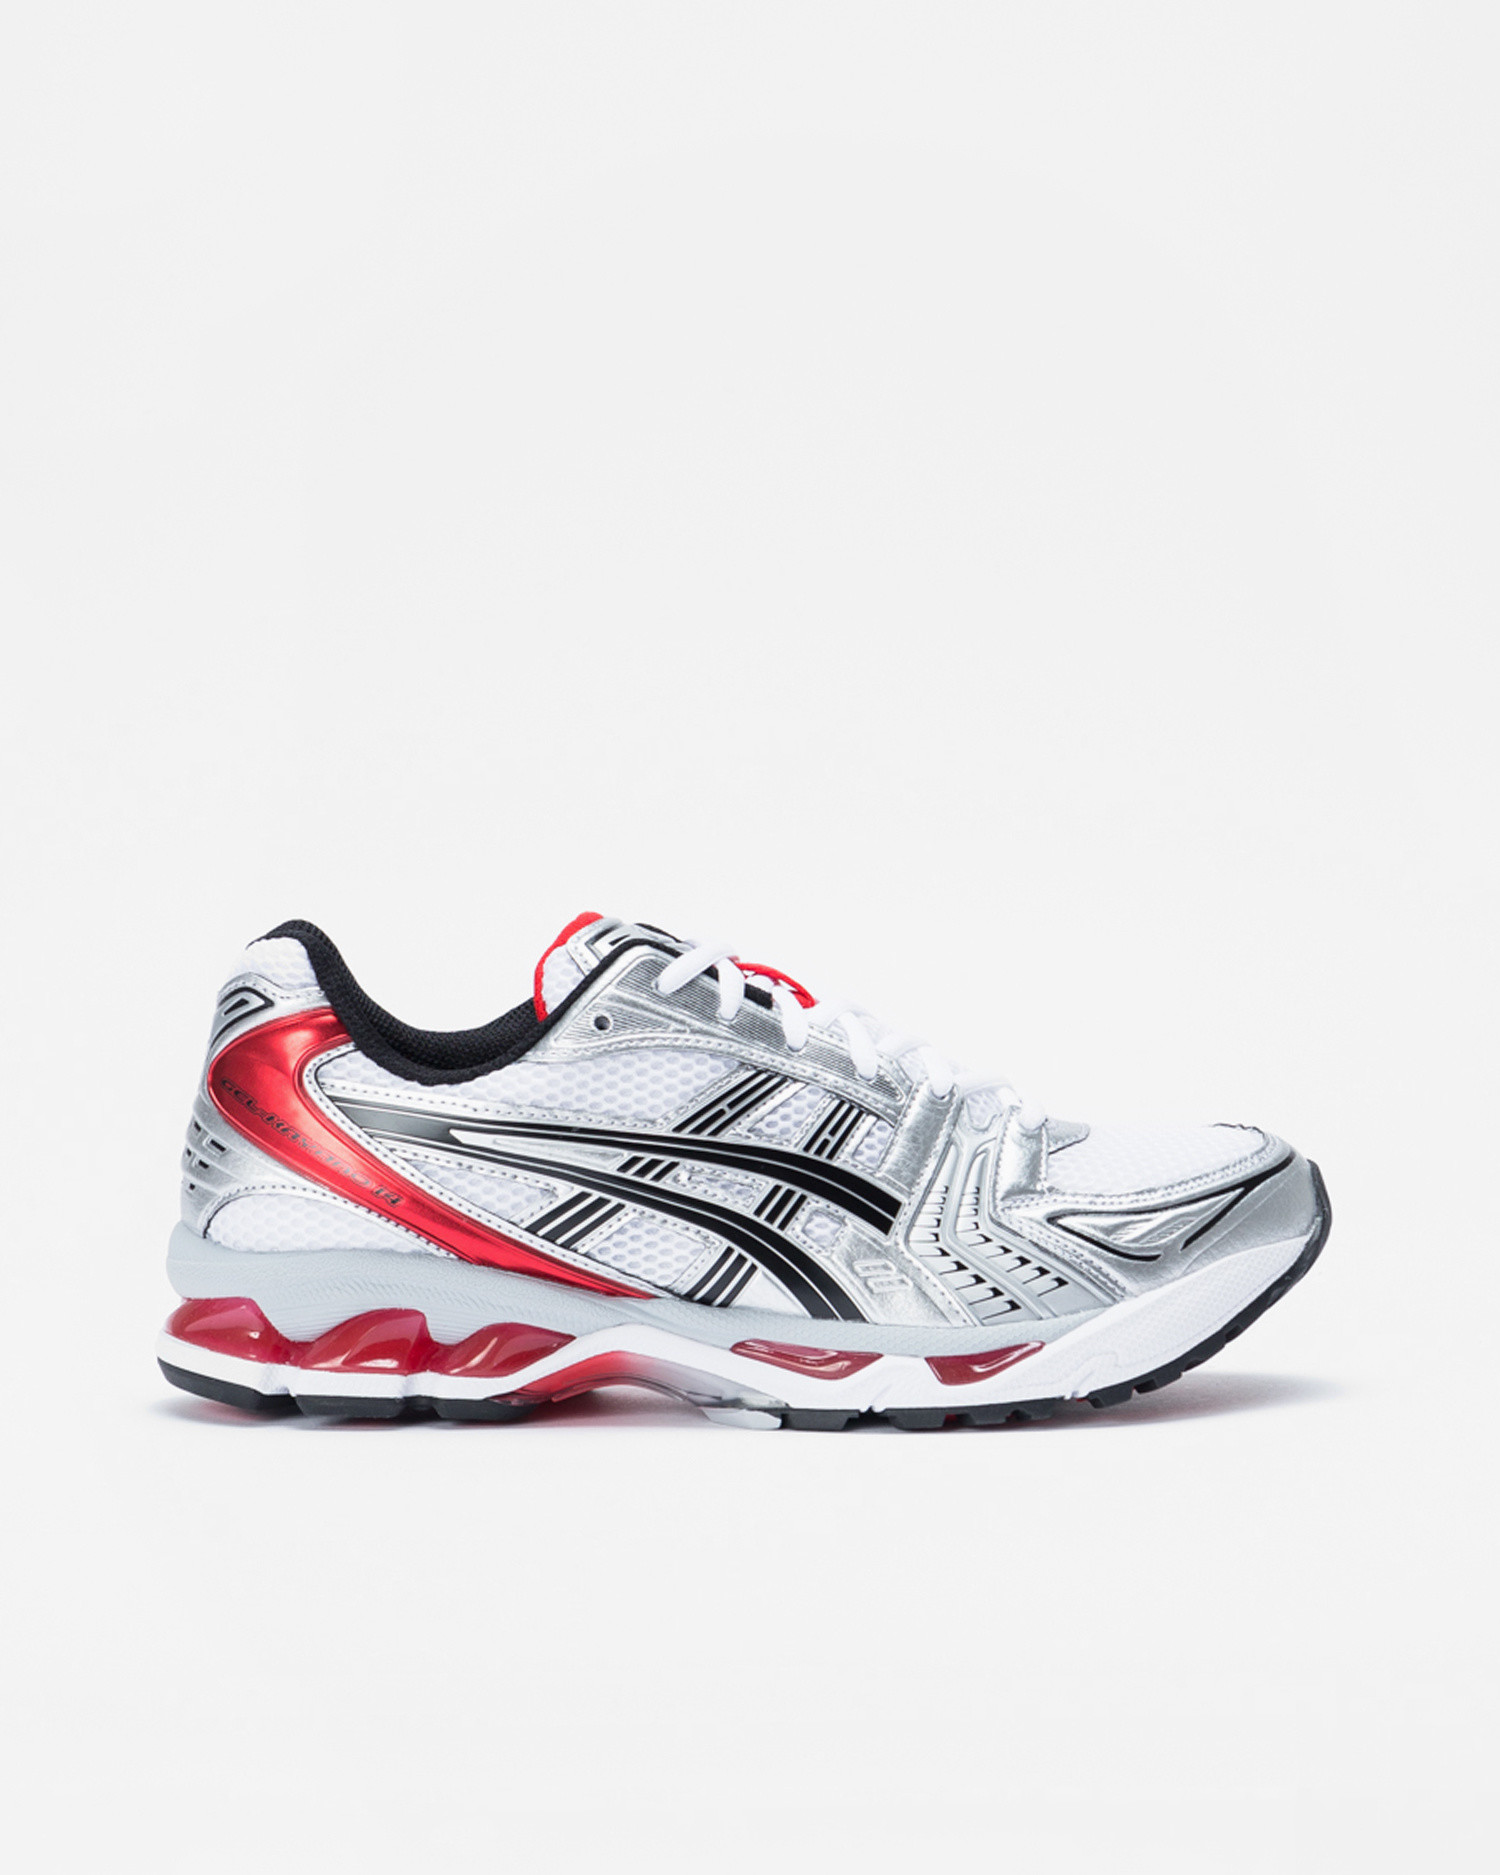 Asics Gel Kayano 14 White/Classic Red